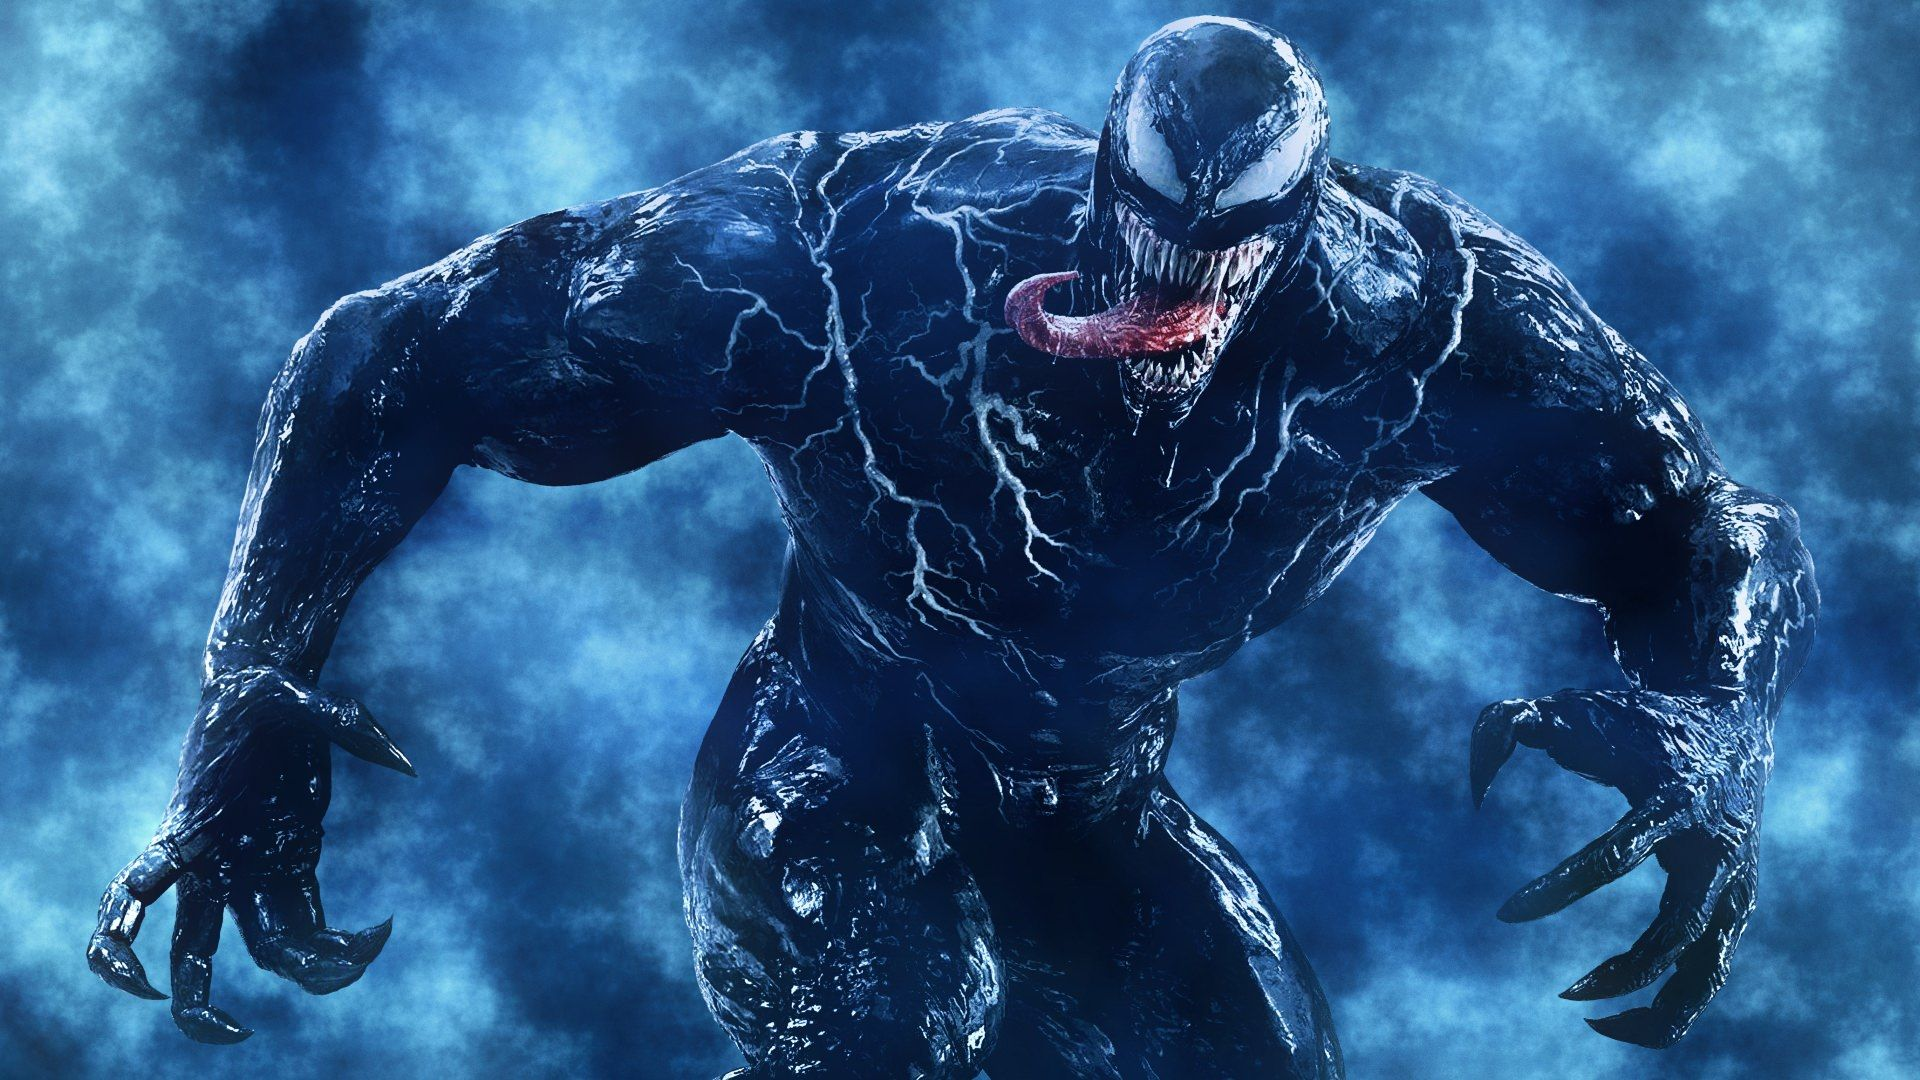 Epic Venom Wallpaper